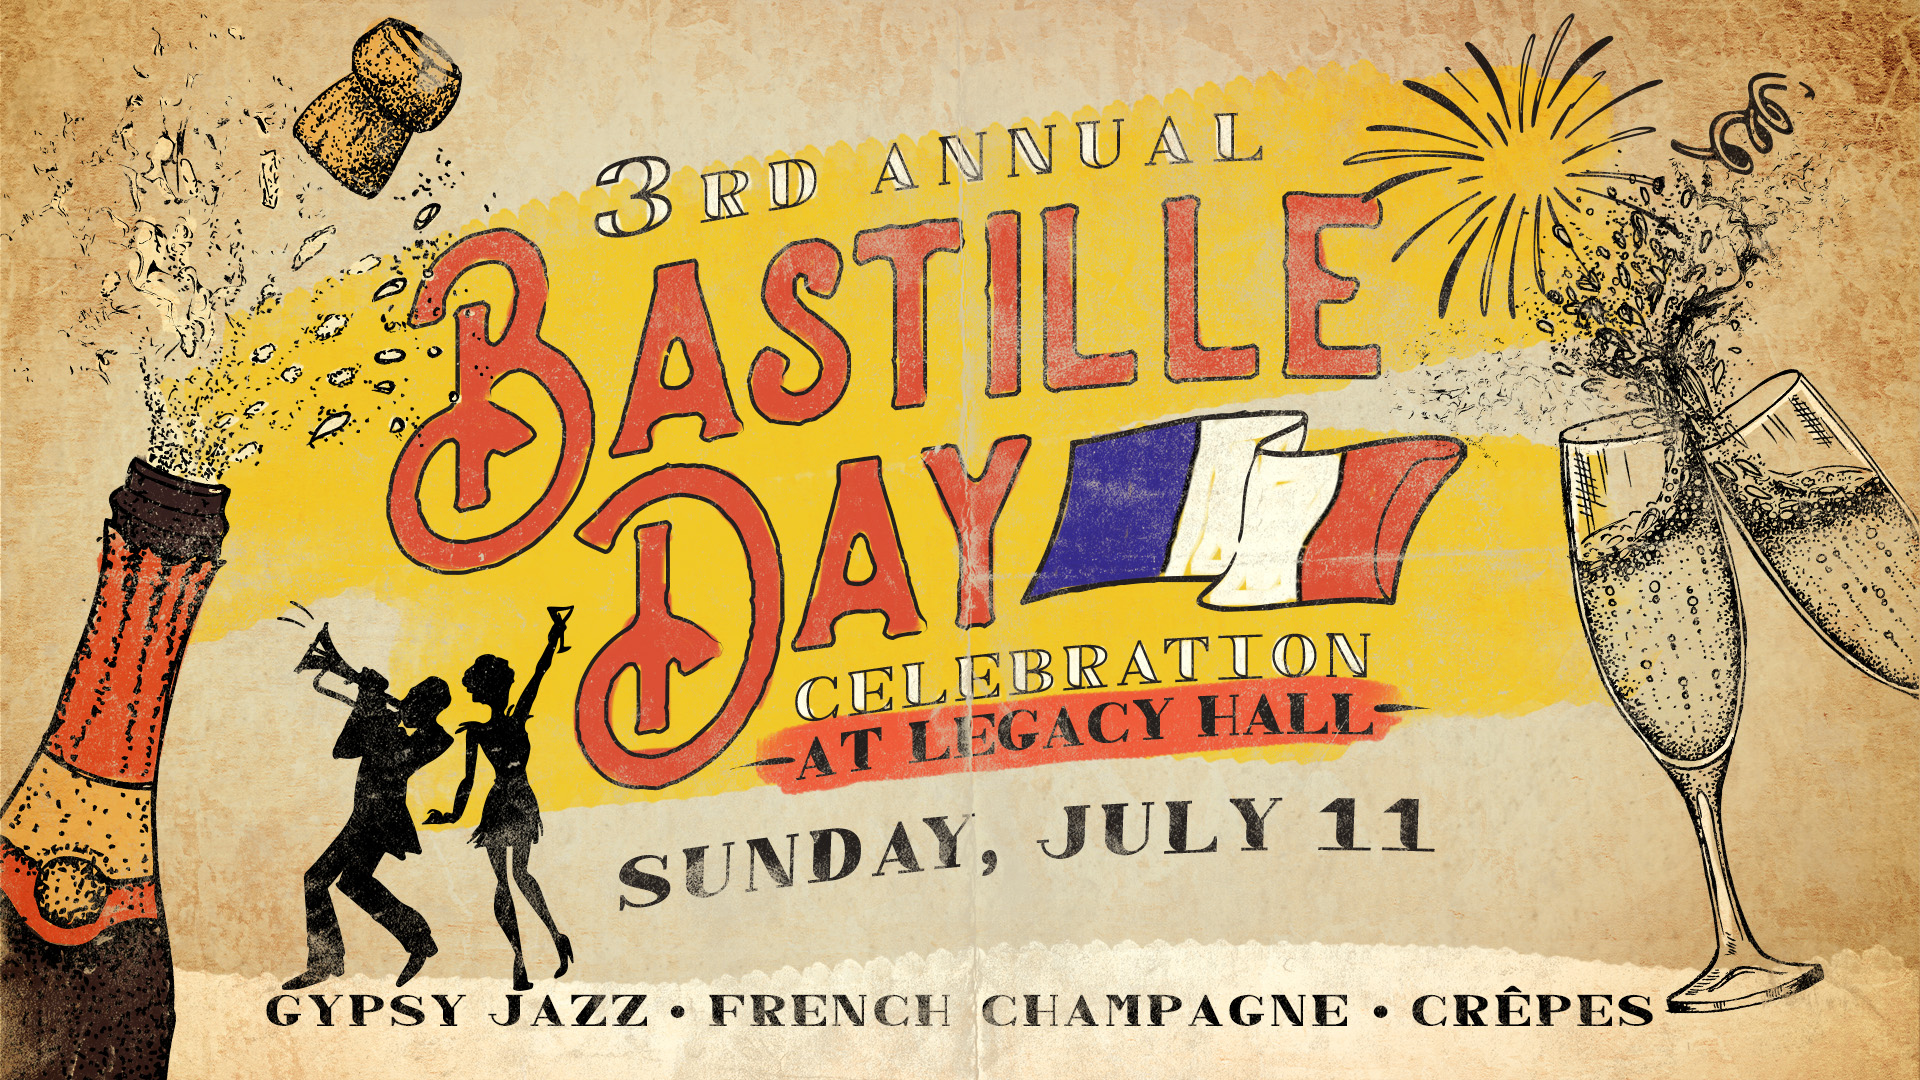 Promo image of 3rd Annual Bastille Day